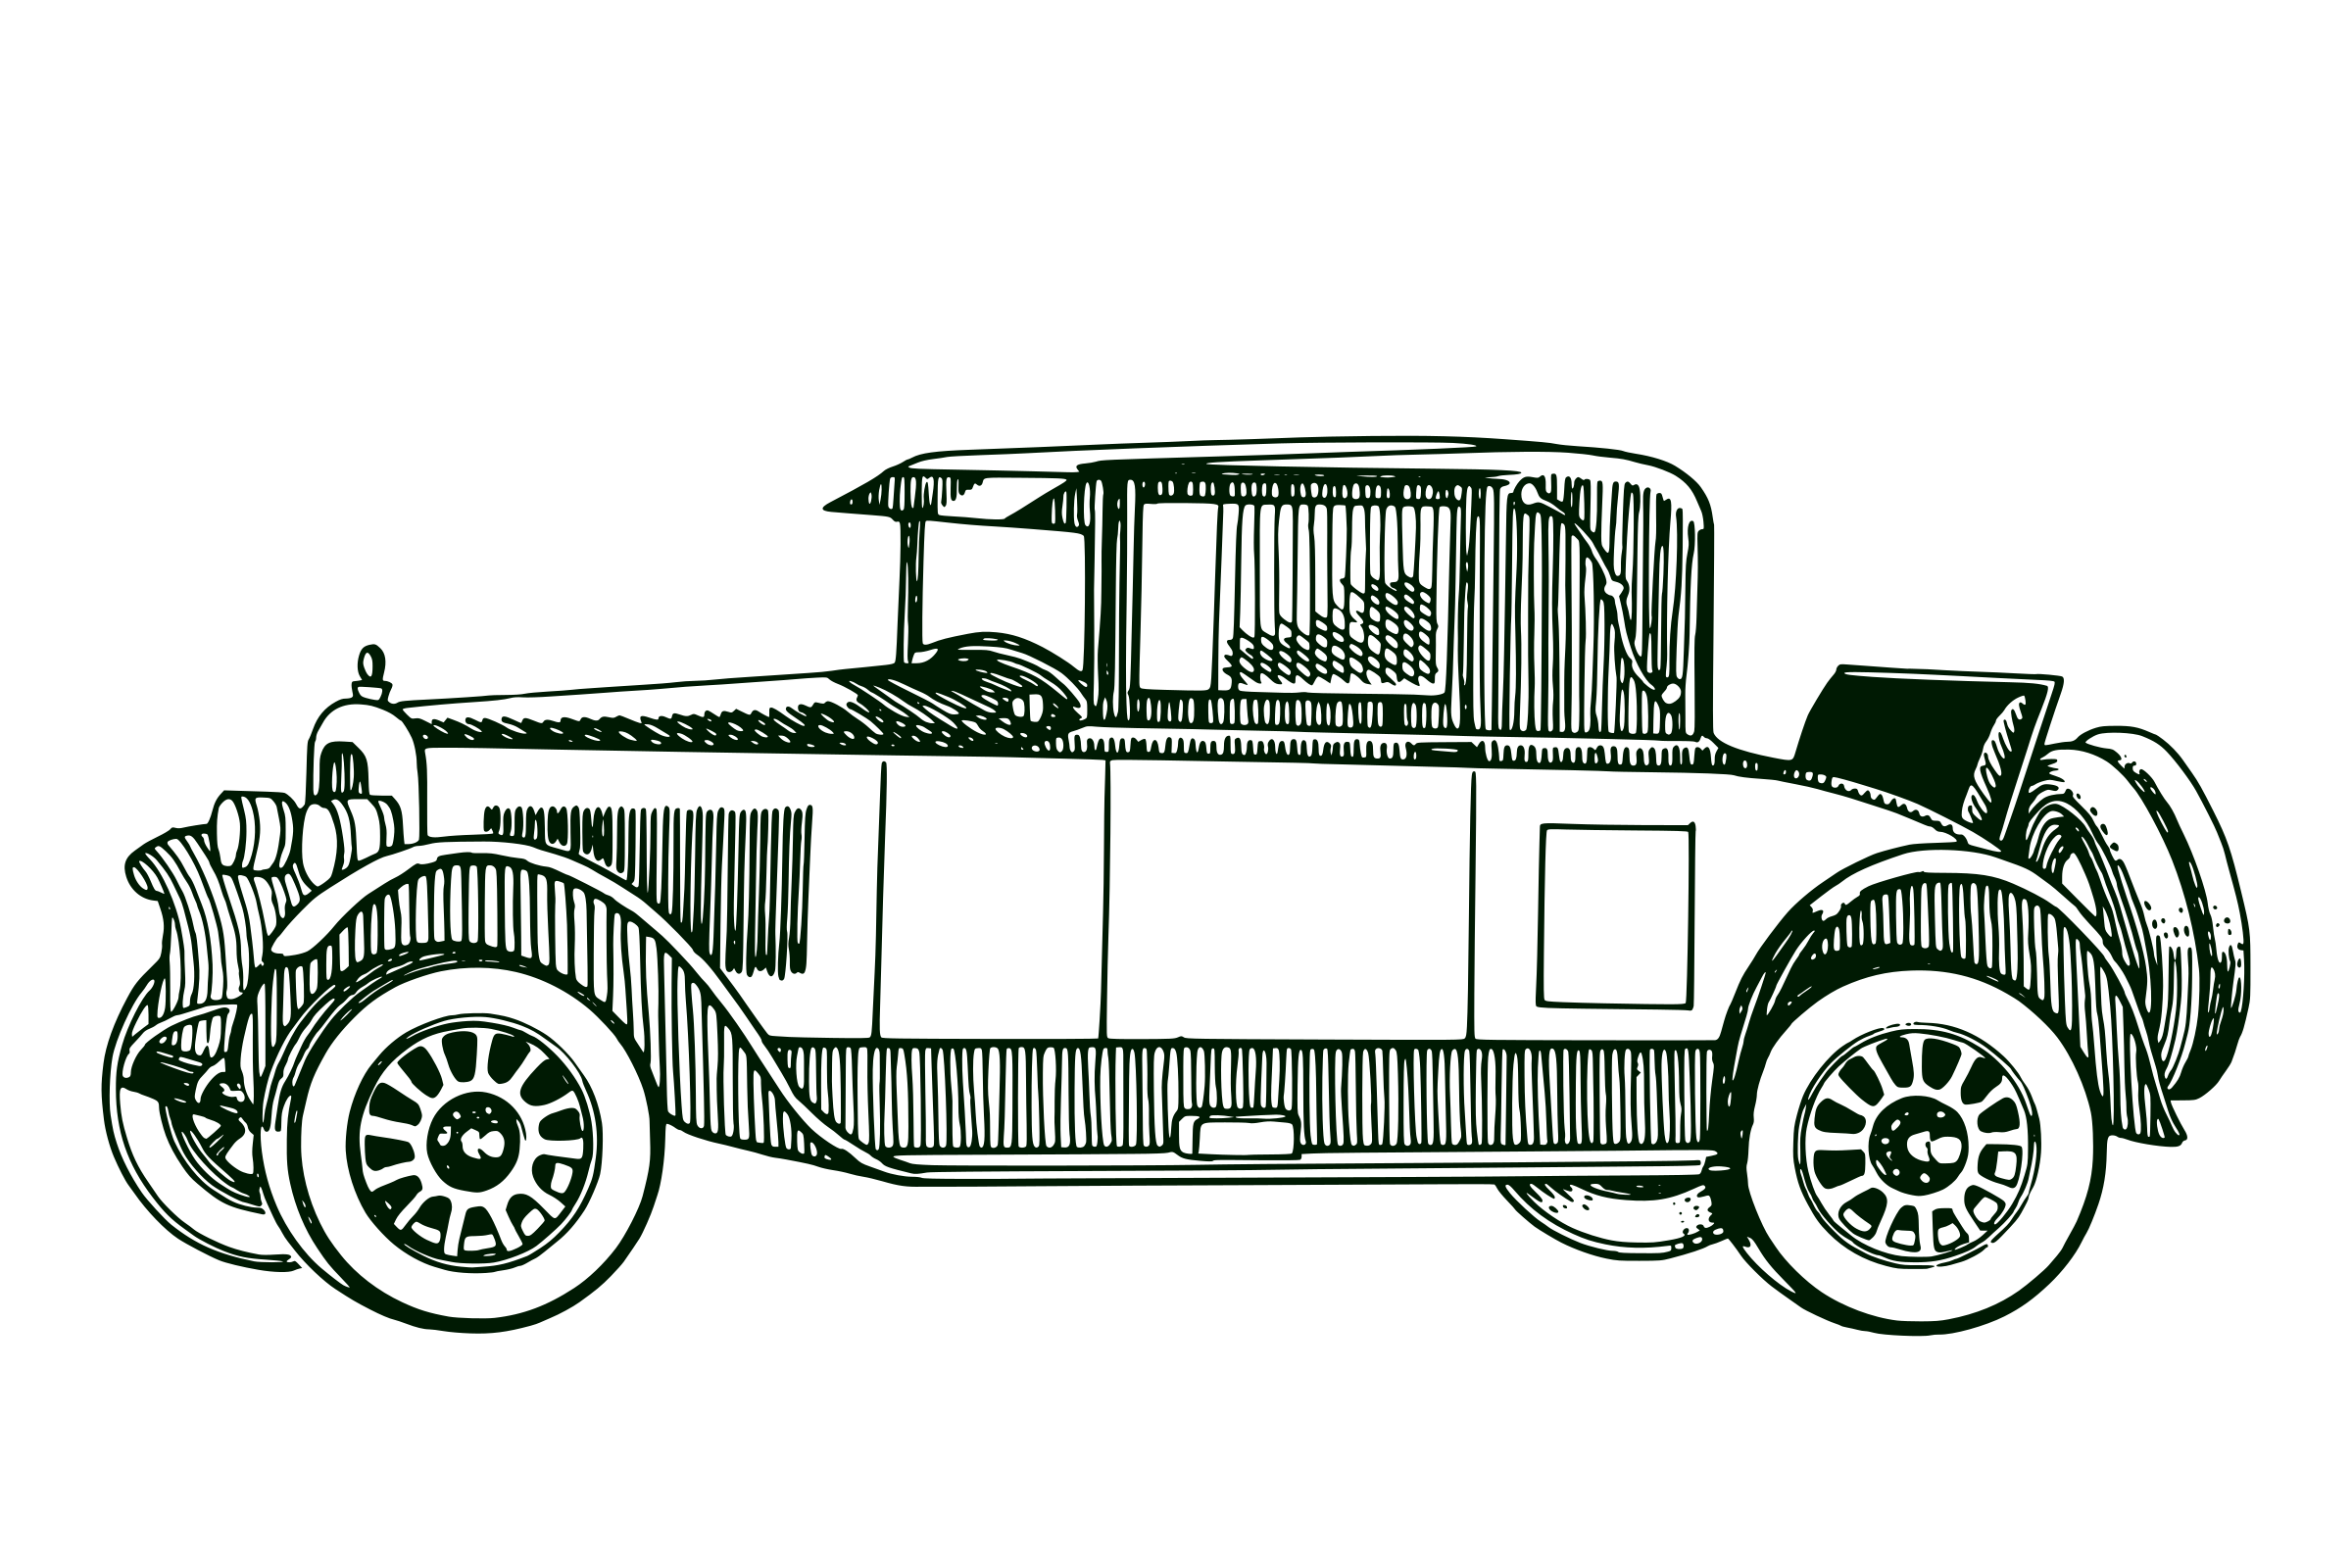 Classic Car vector clipart image.